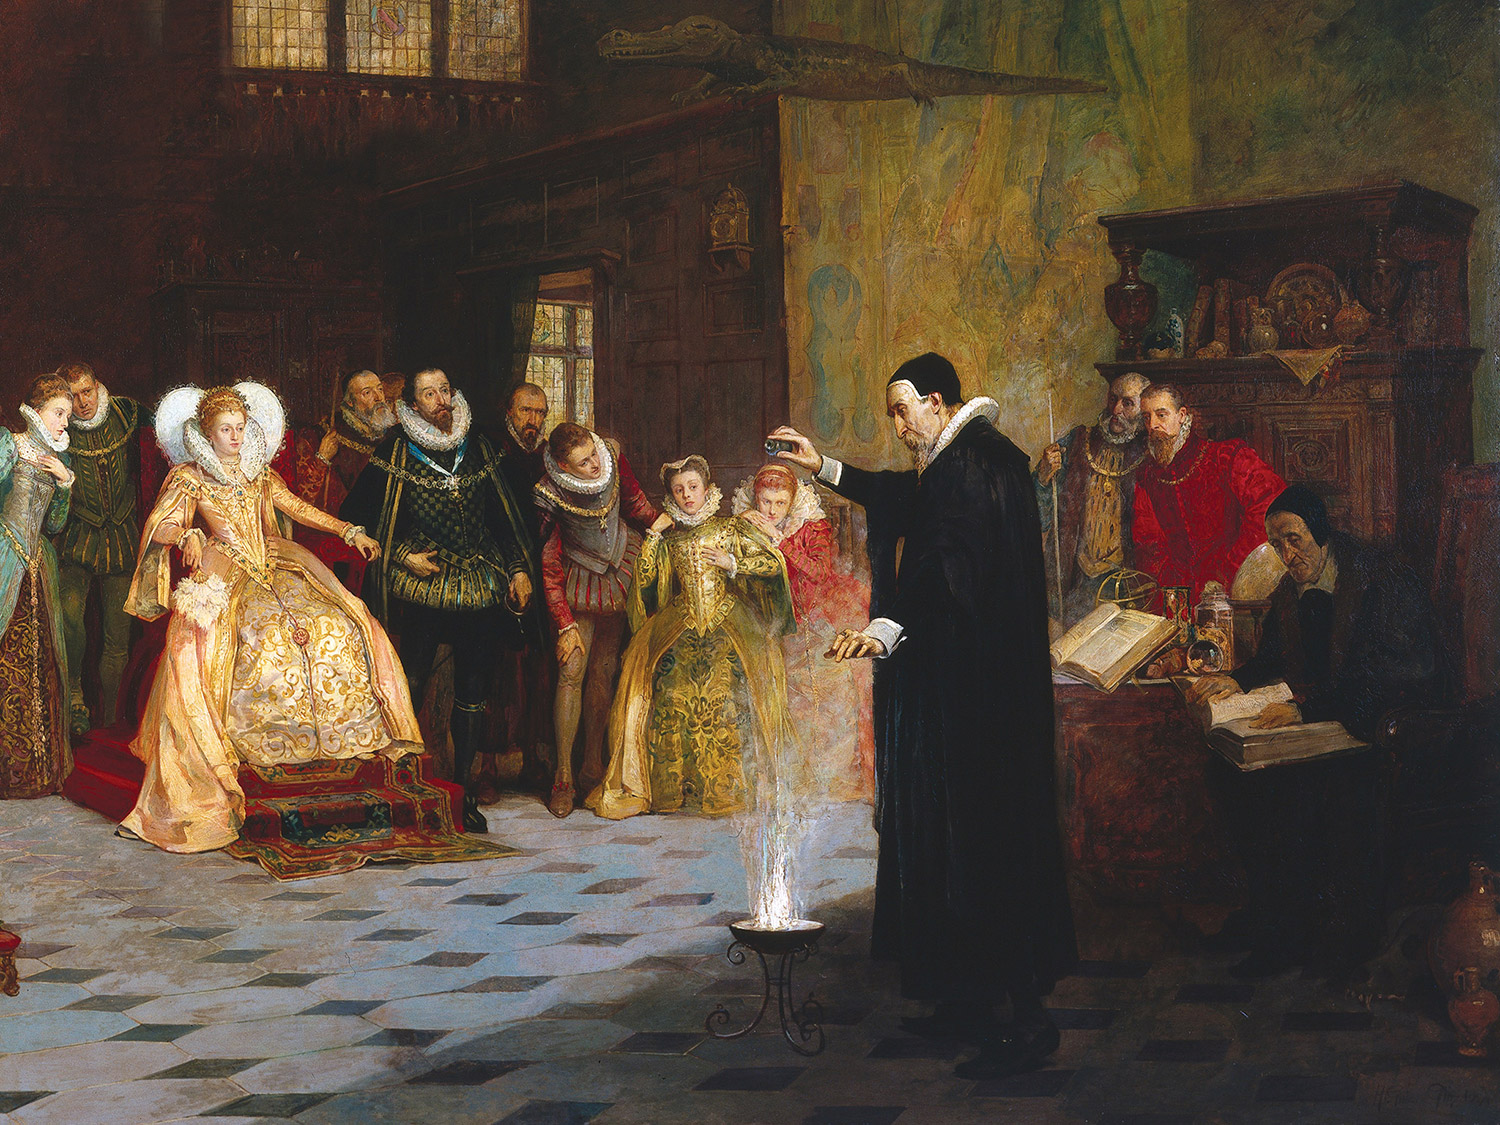 John Dee performing an experiment before Elizabeth I, by Henry Gillard Glindoni (1852-1913).